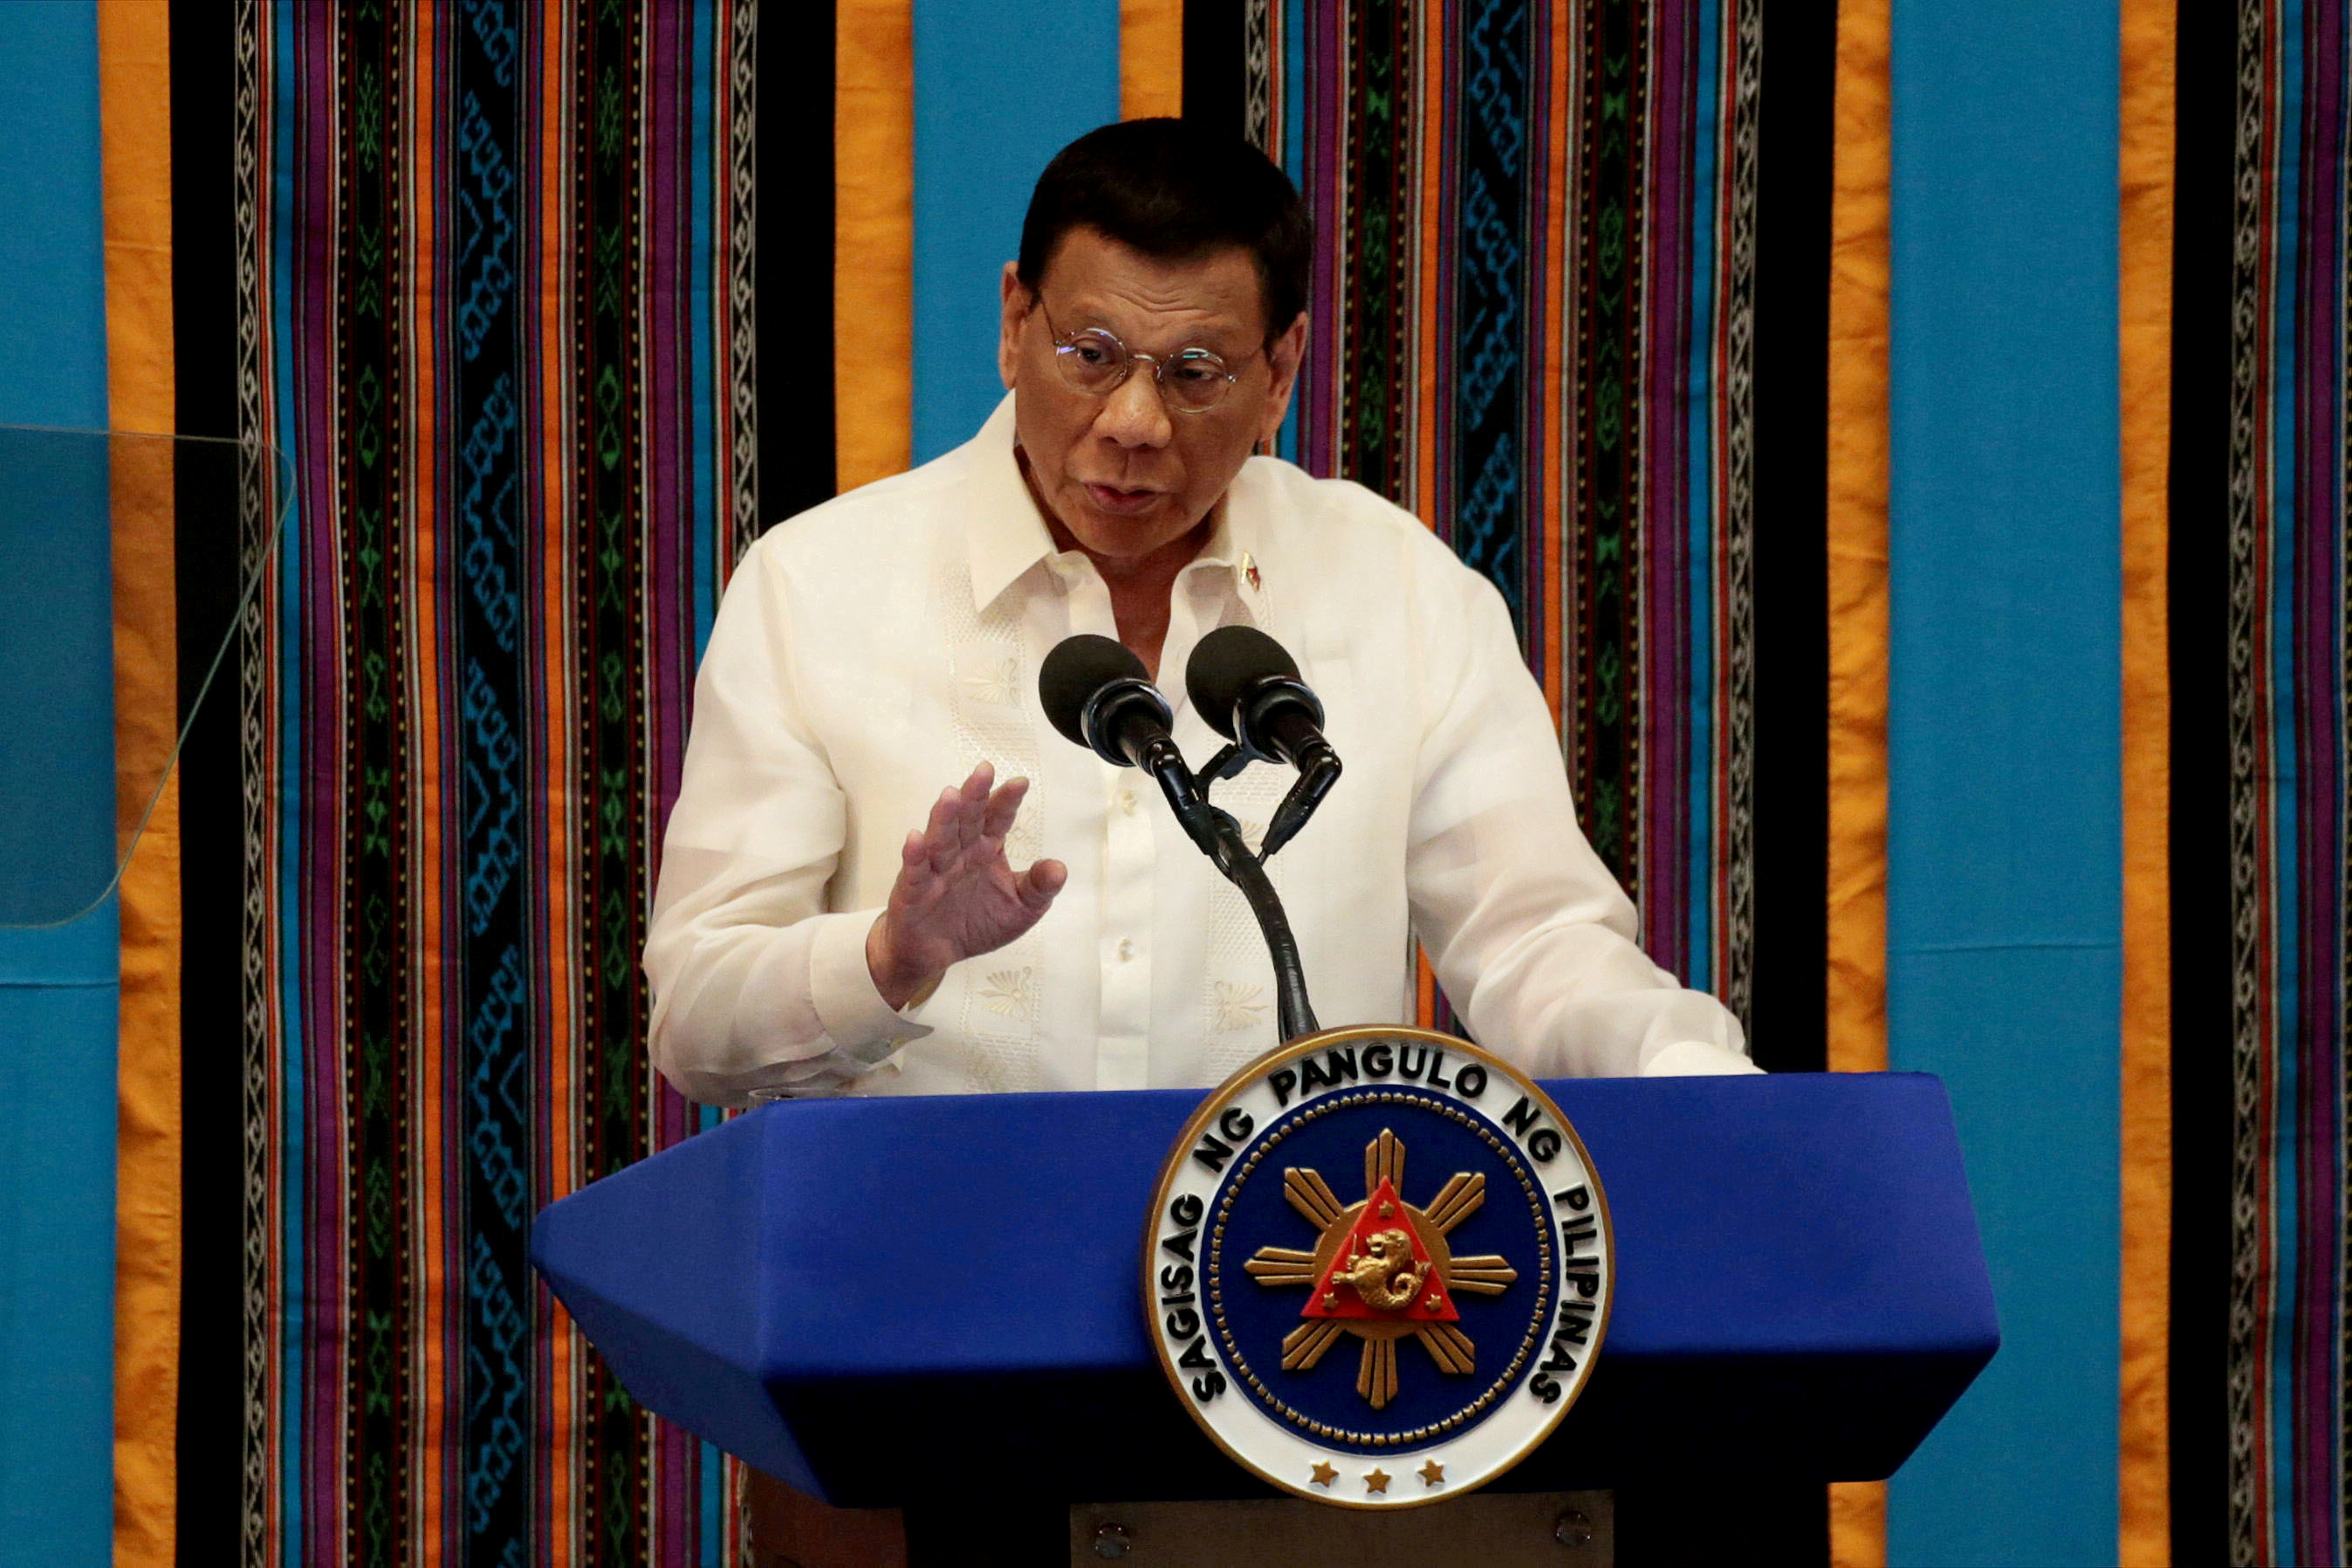 Philippine President Rodrigo Duterte gestures during his fourth State of the Nation address at the Philippine Congress in Quezon City, Metro Manila, Philippines, July 22, 2019. REUTERS/Eloisa Lopez/File Photo